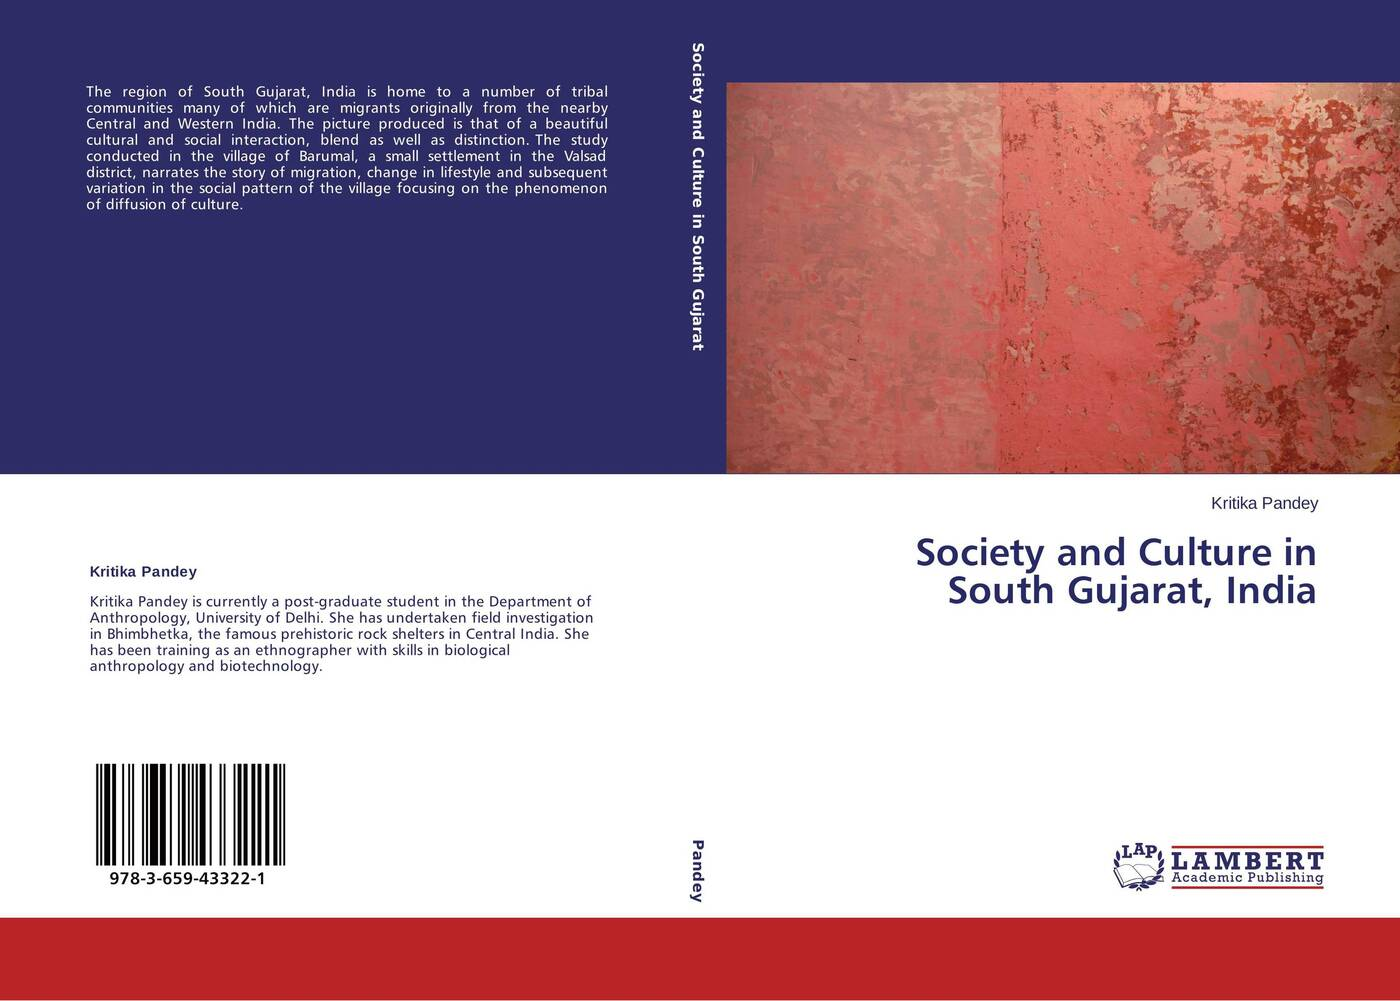 Kritika Pandey Society and Culture in South Gujarat, India western culture and behavioral change among the youth in uganda